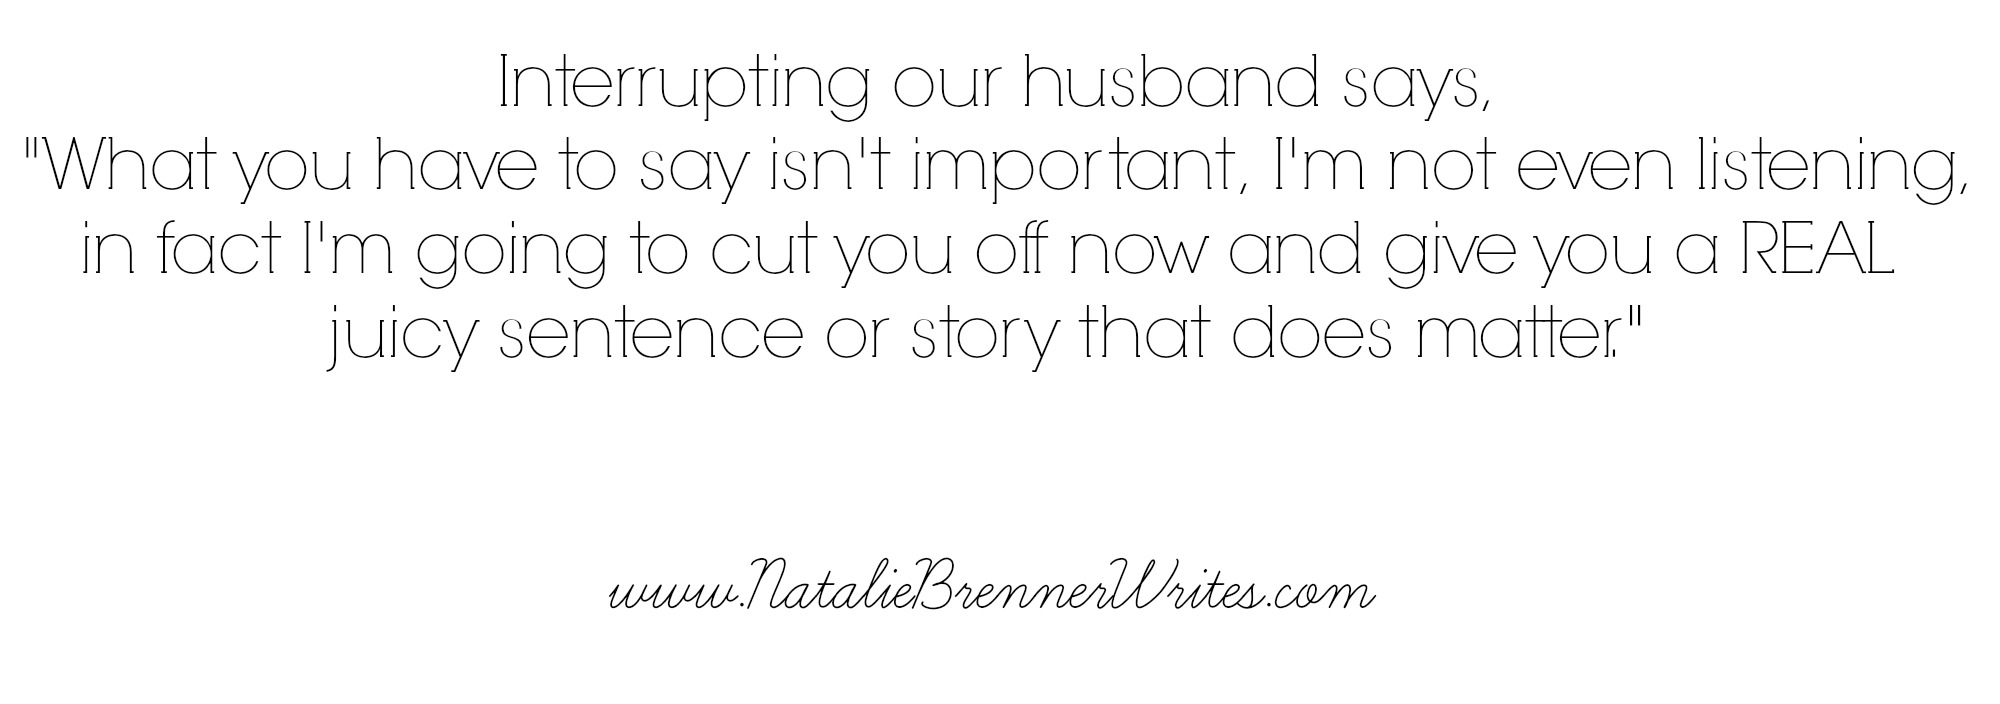 interrupting husband